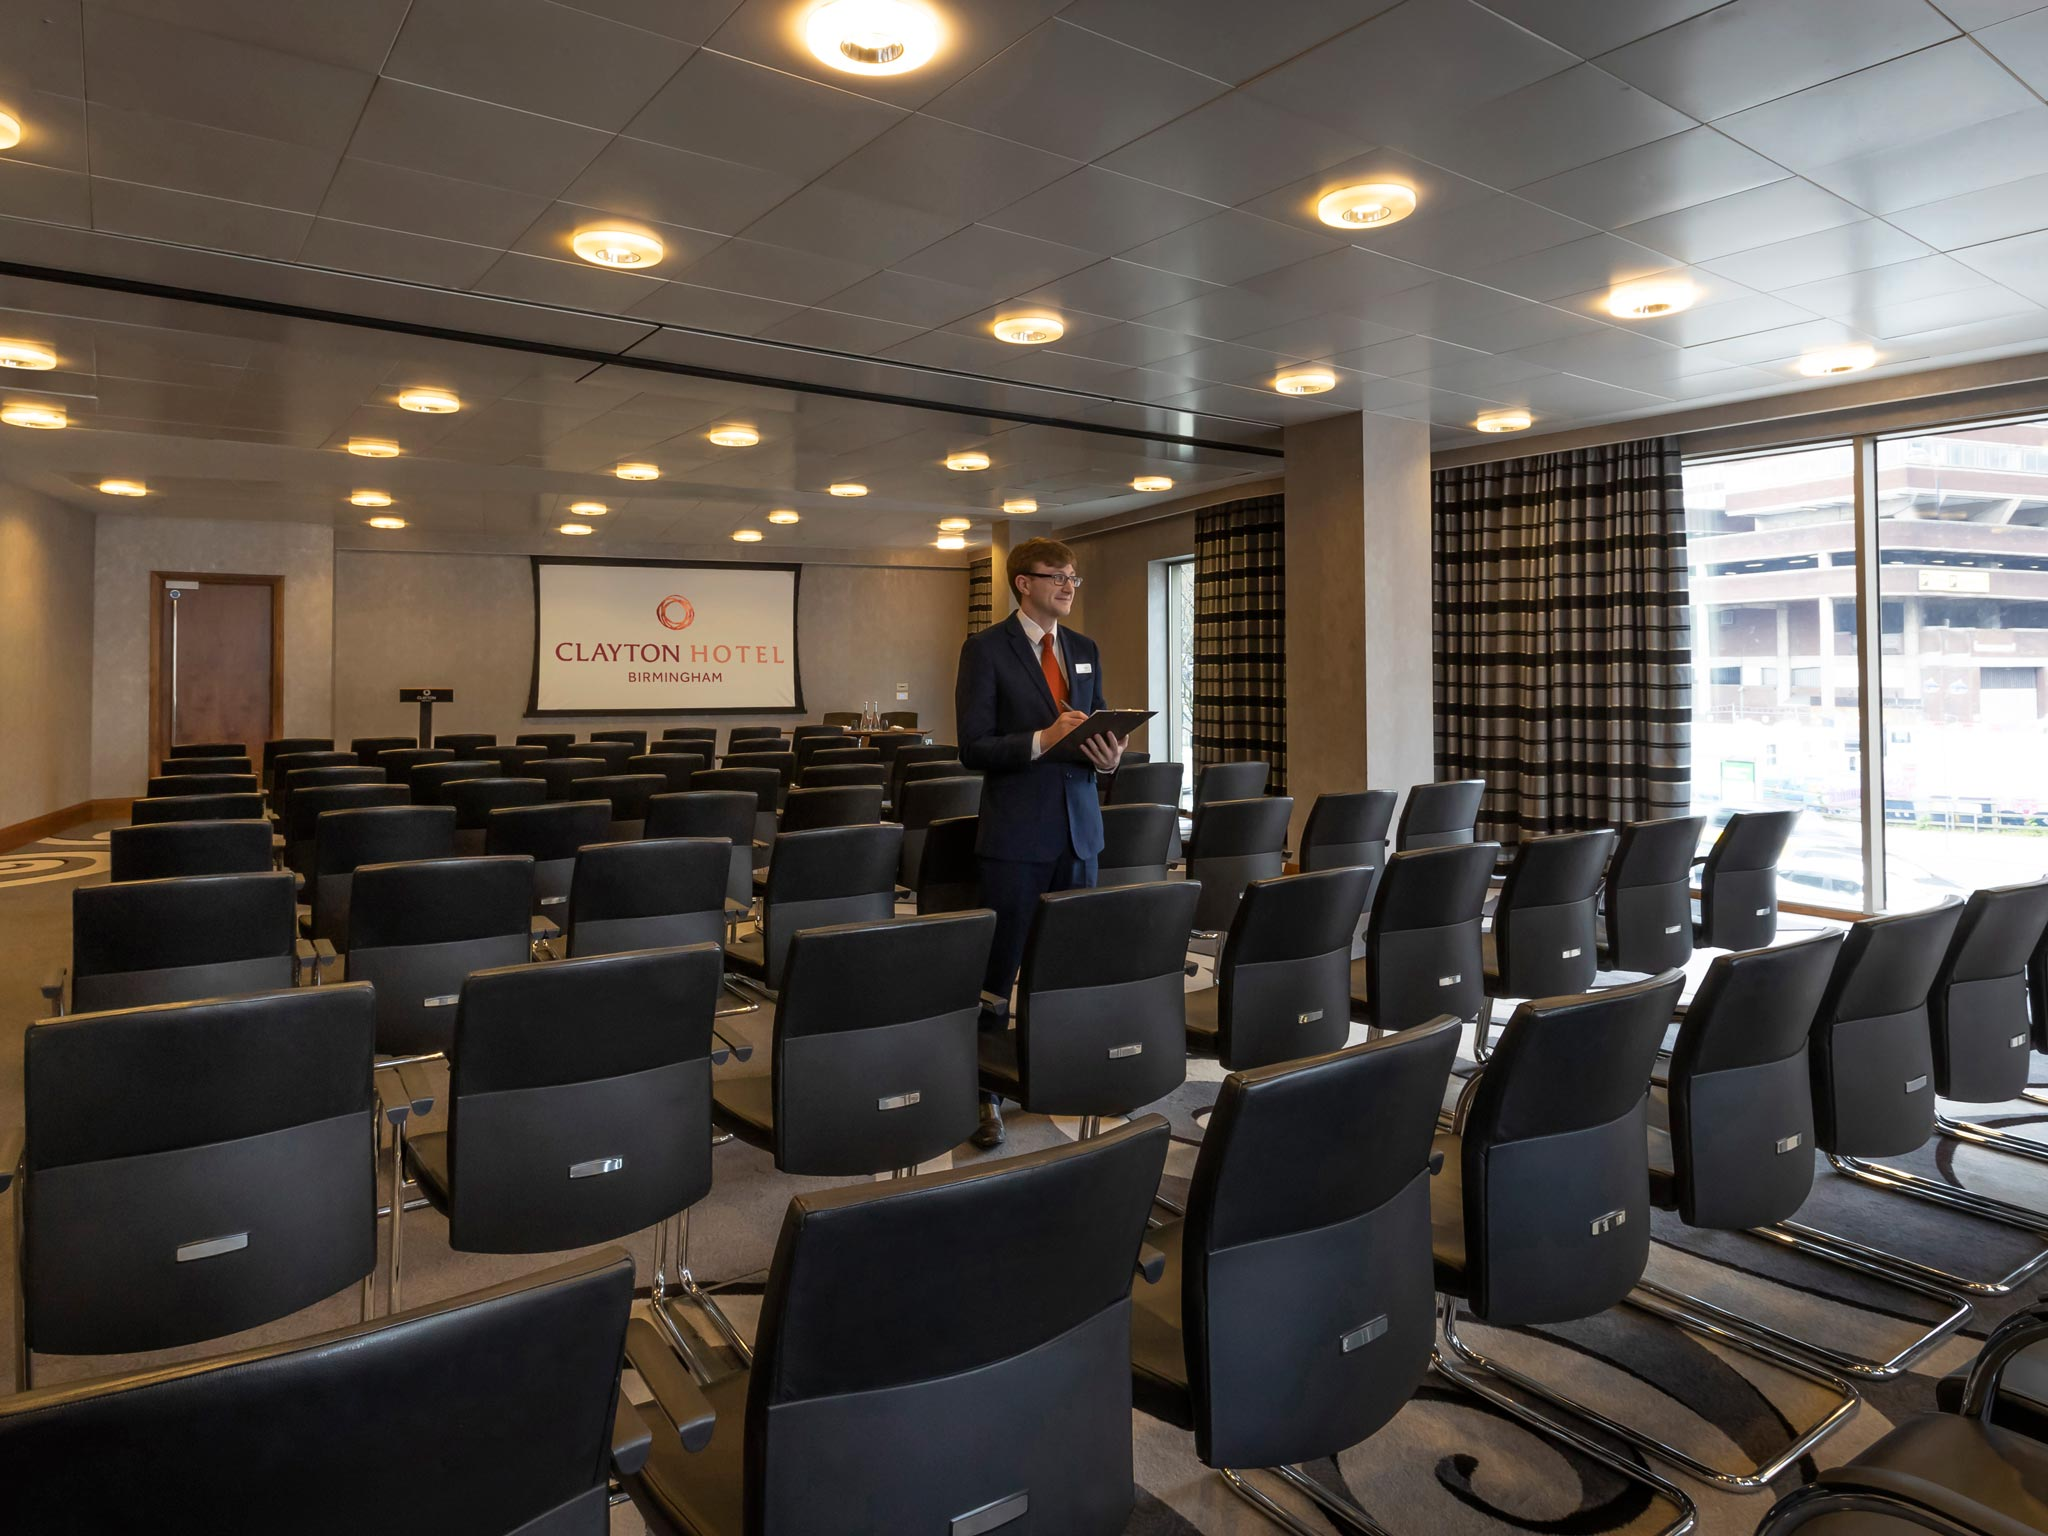 Meeting-Room-Clayton-Hotel-Birmingham